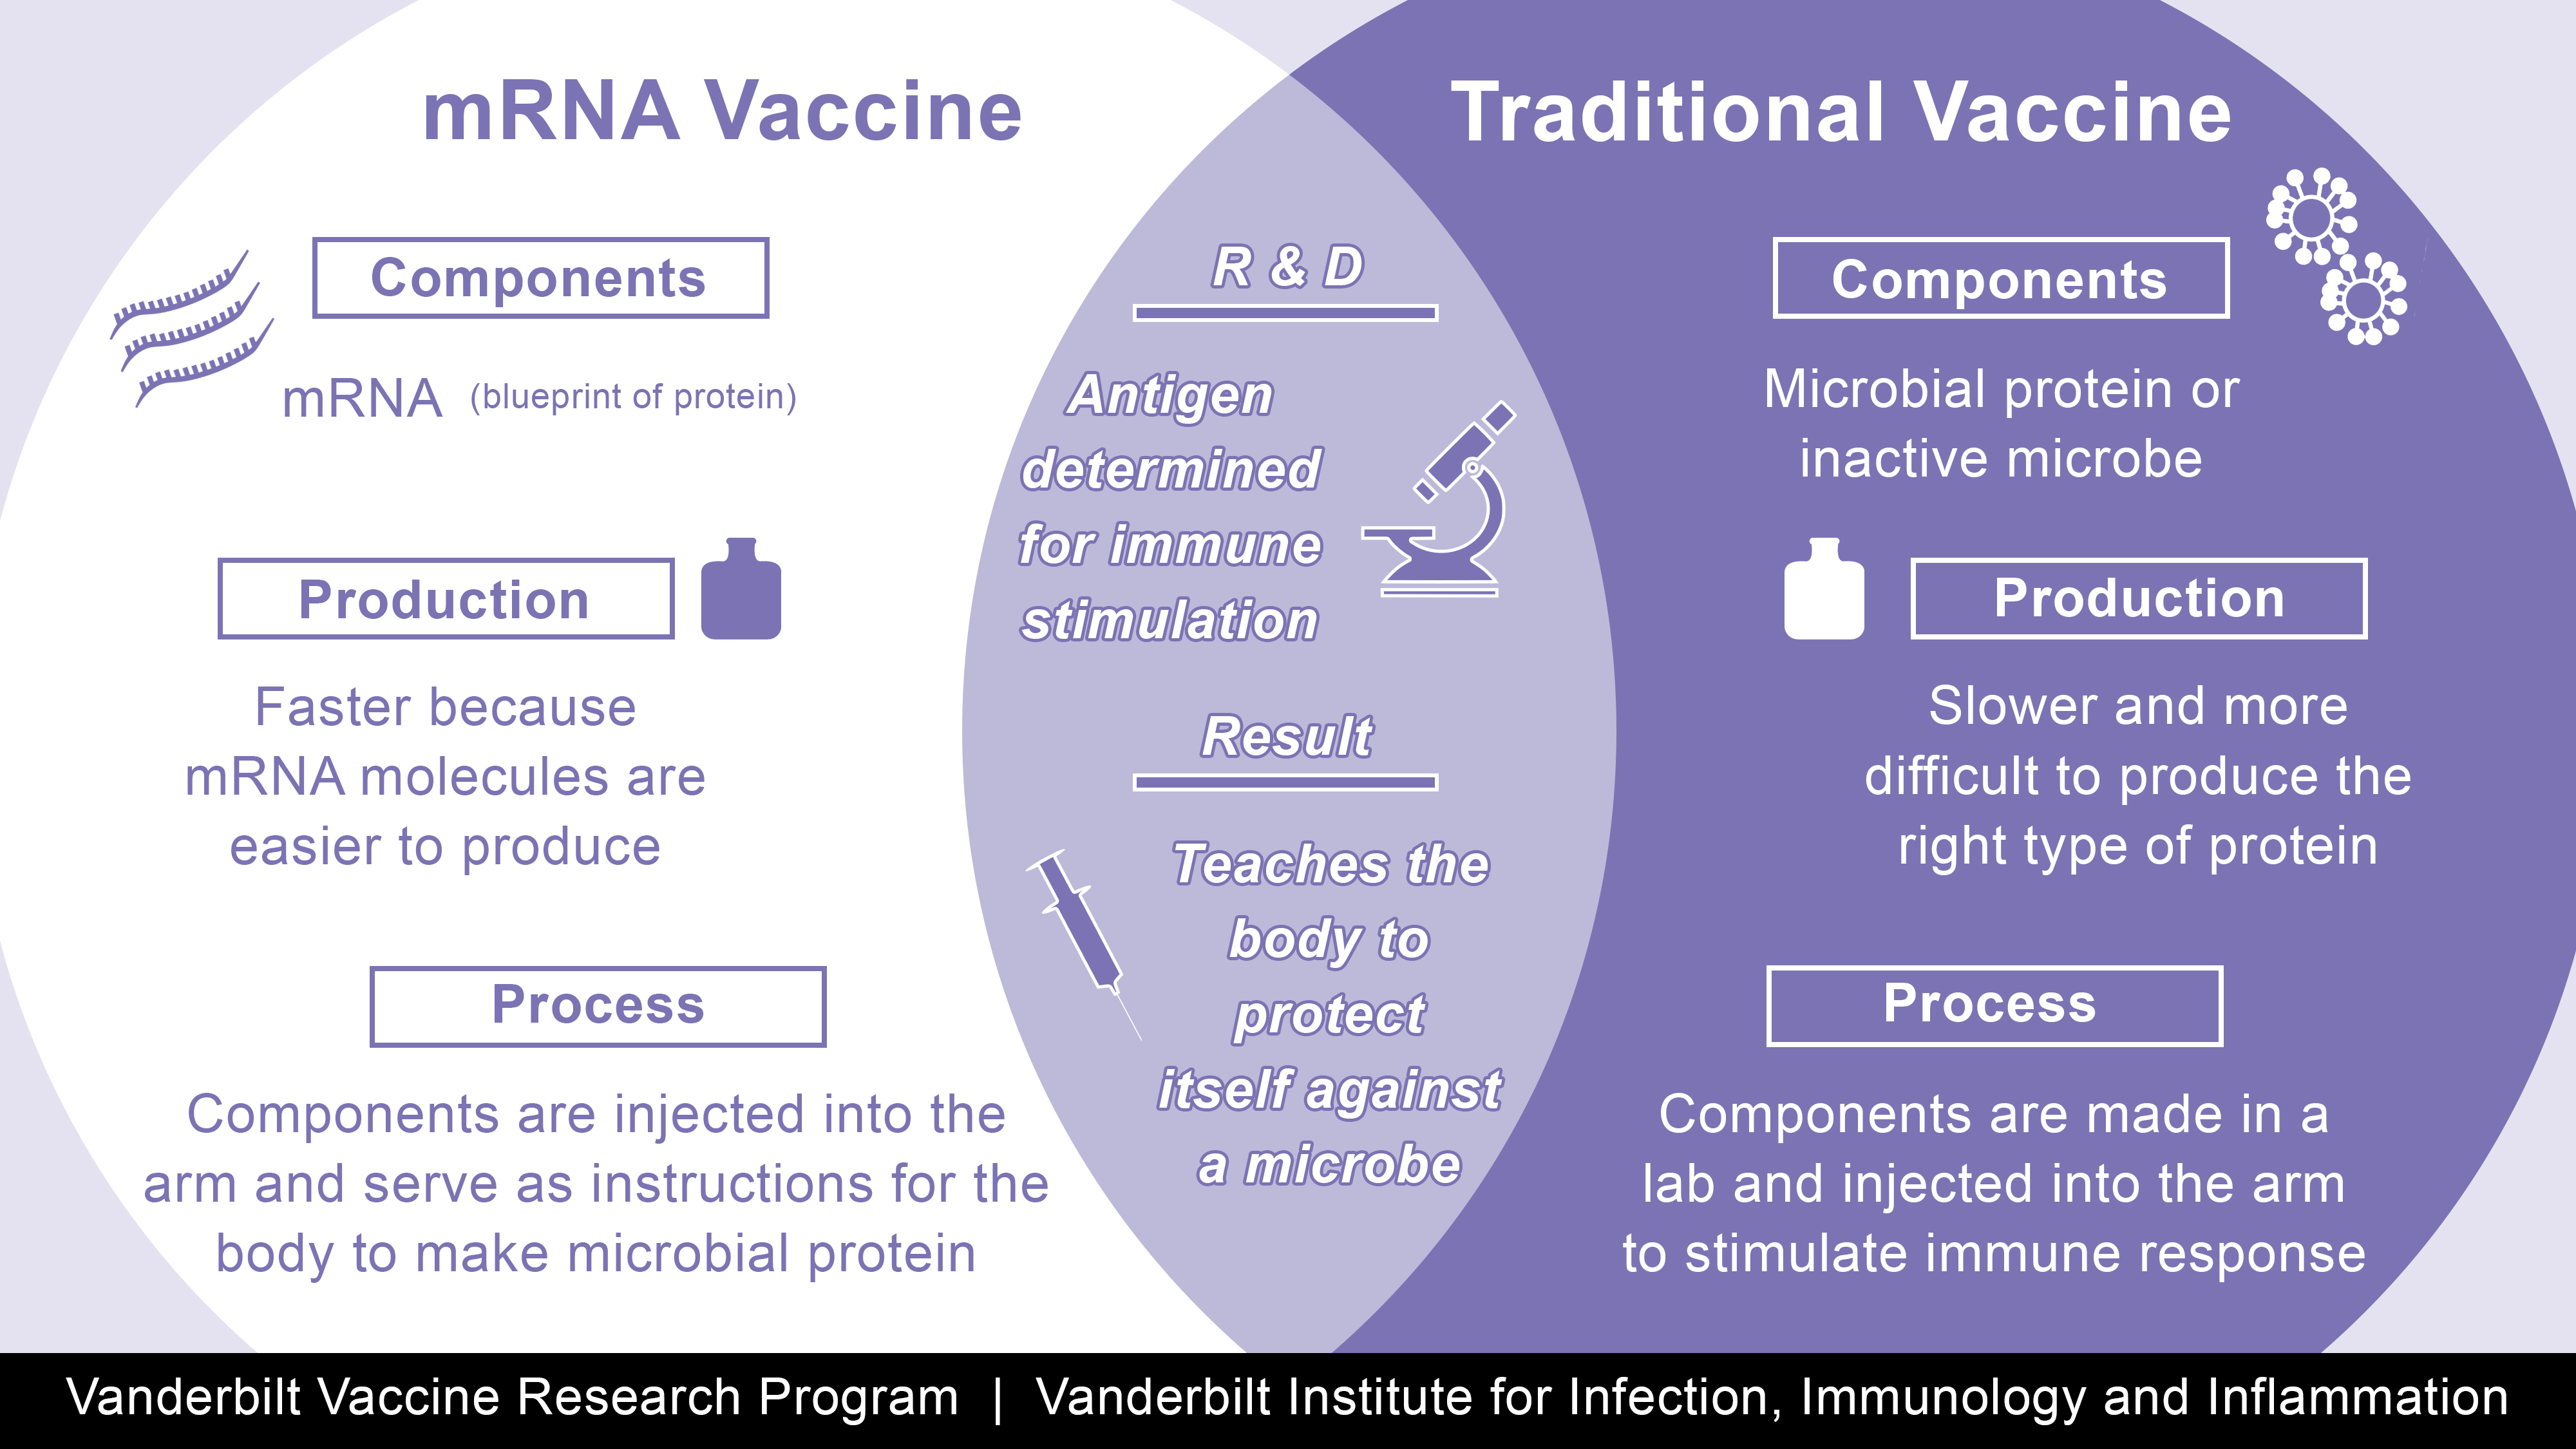 How does a mRNA vaccine compare to a traditional vaccine?